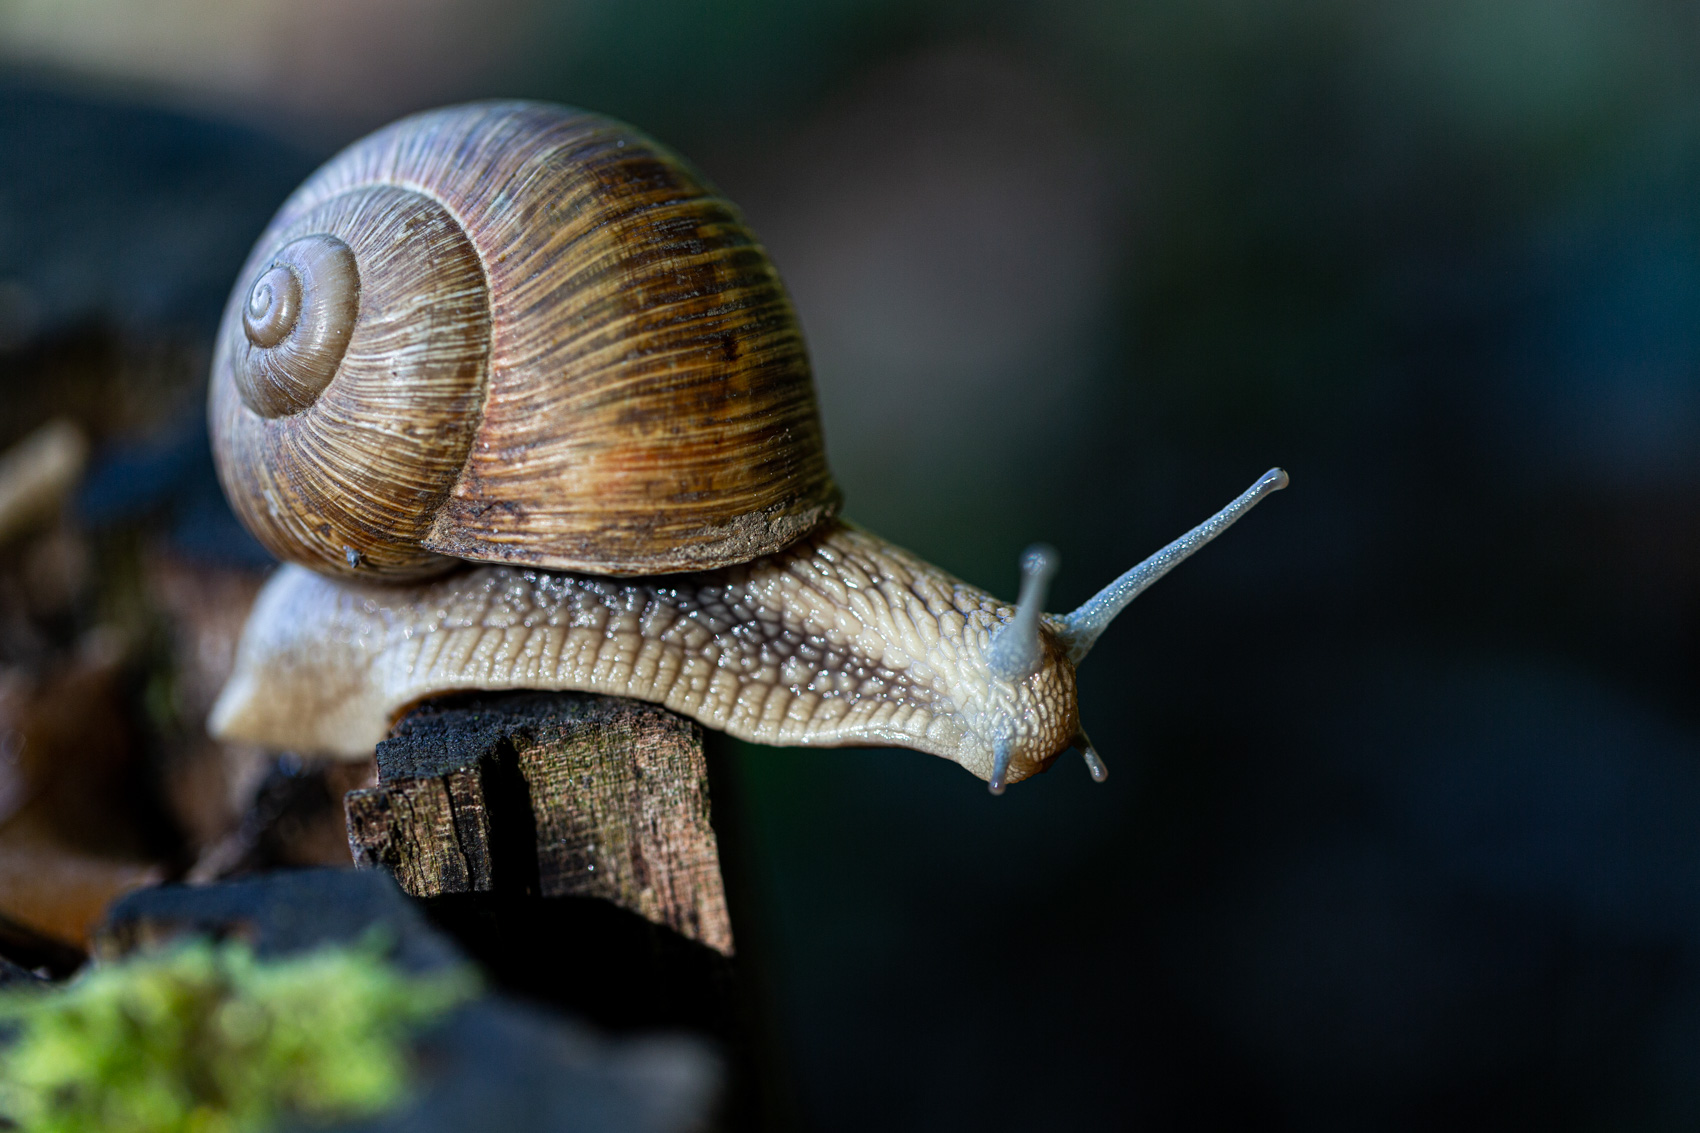 Projet 52 - Photo macro d'escargot